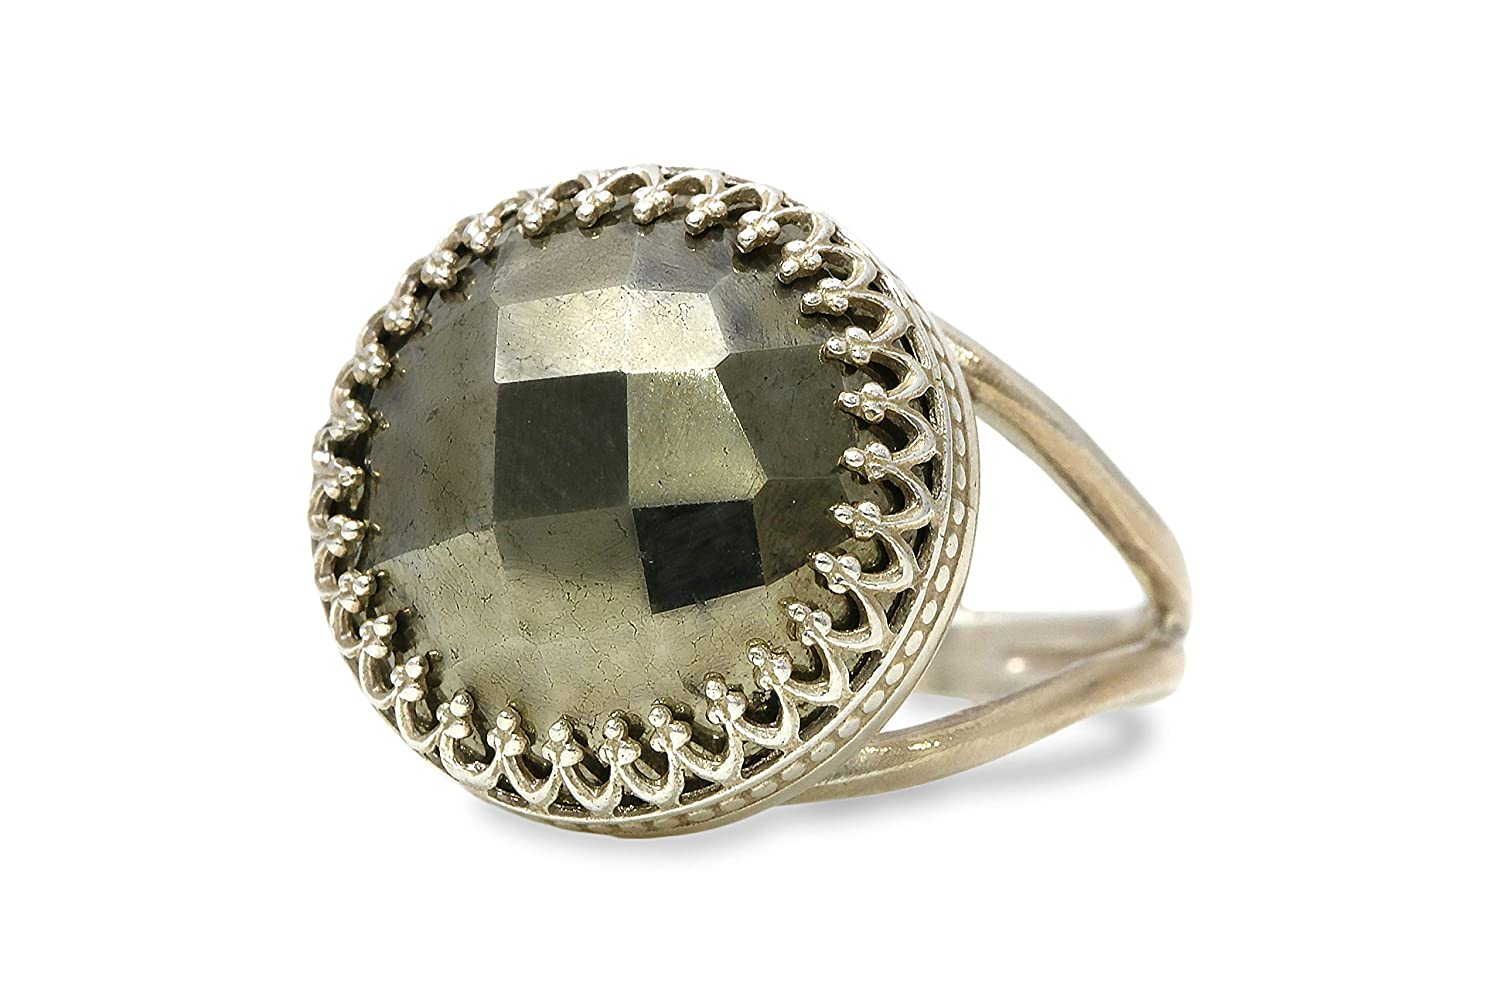 Gift for Mom Sister Jewelry Box Included Anemone Jewelry Sterling Silver Rings Bff Statement Jewelry for Women Fashionable Large Pyrite Ring in Prong Setting